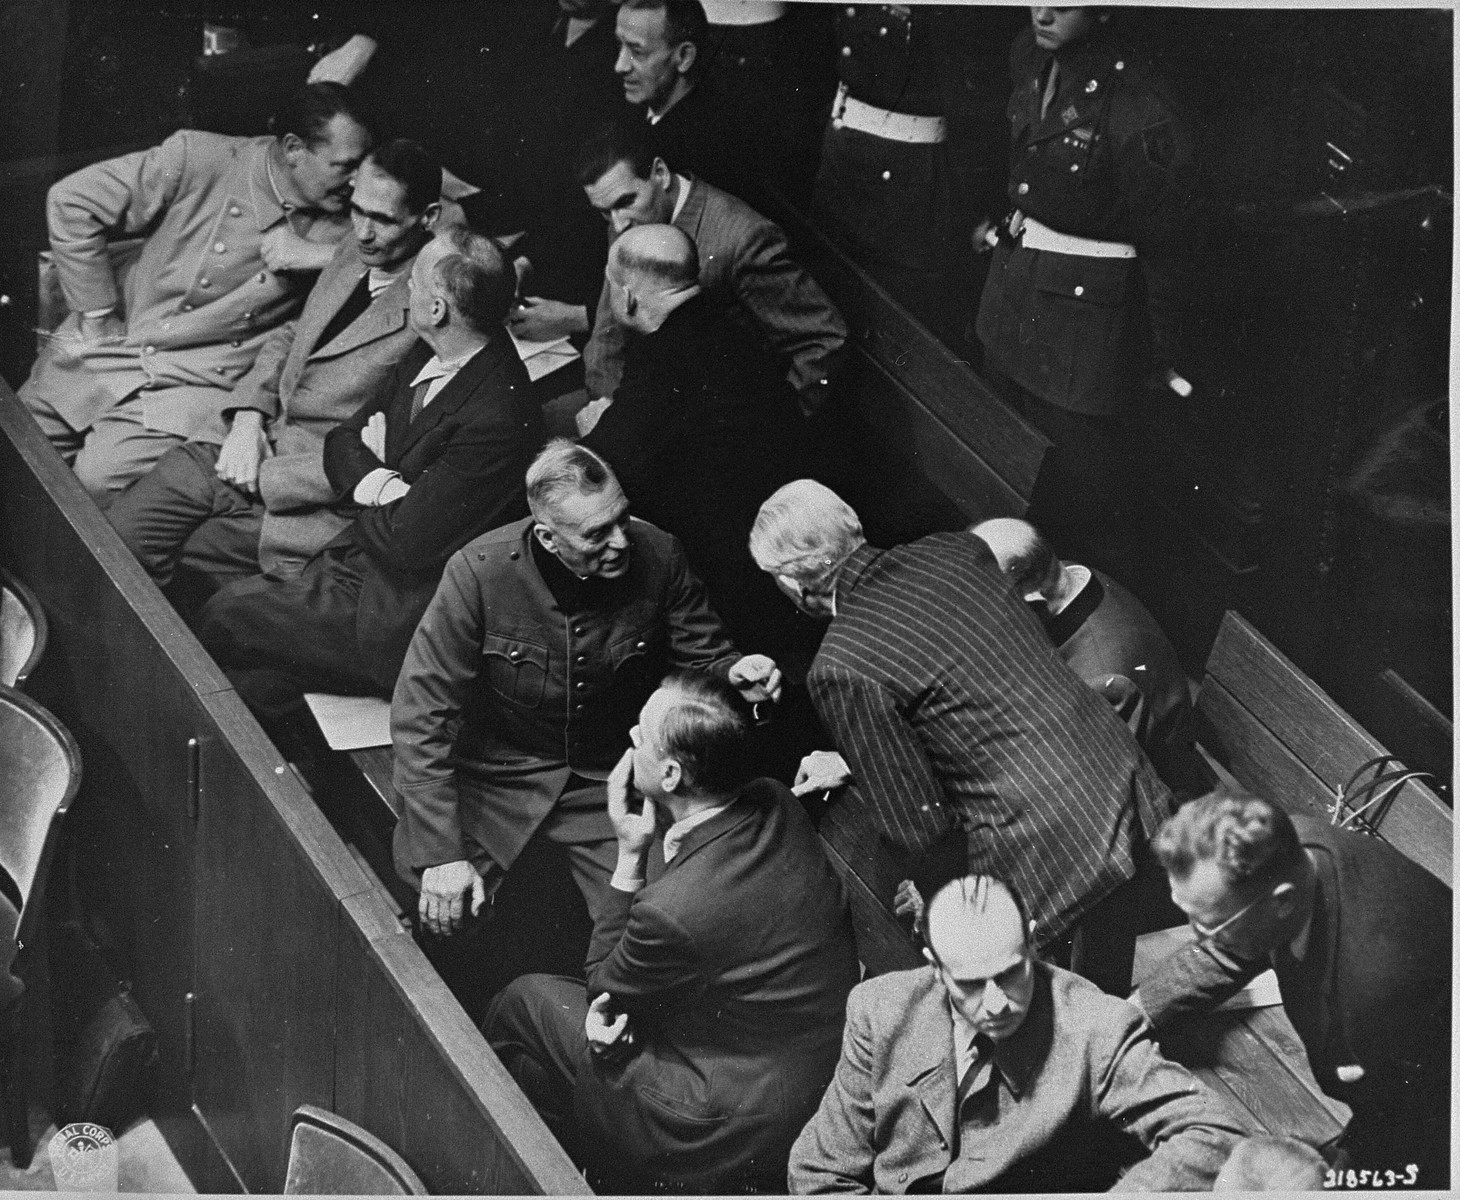 The defendants confer during a recess at the International Military Tribunal trial of war criminals at Nuremberg.